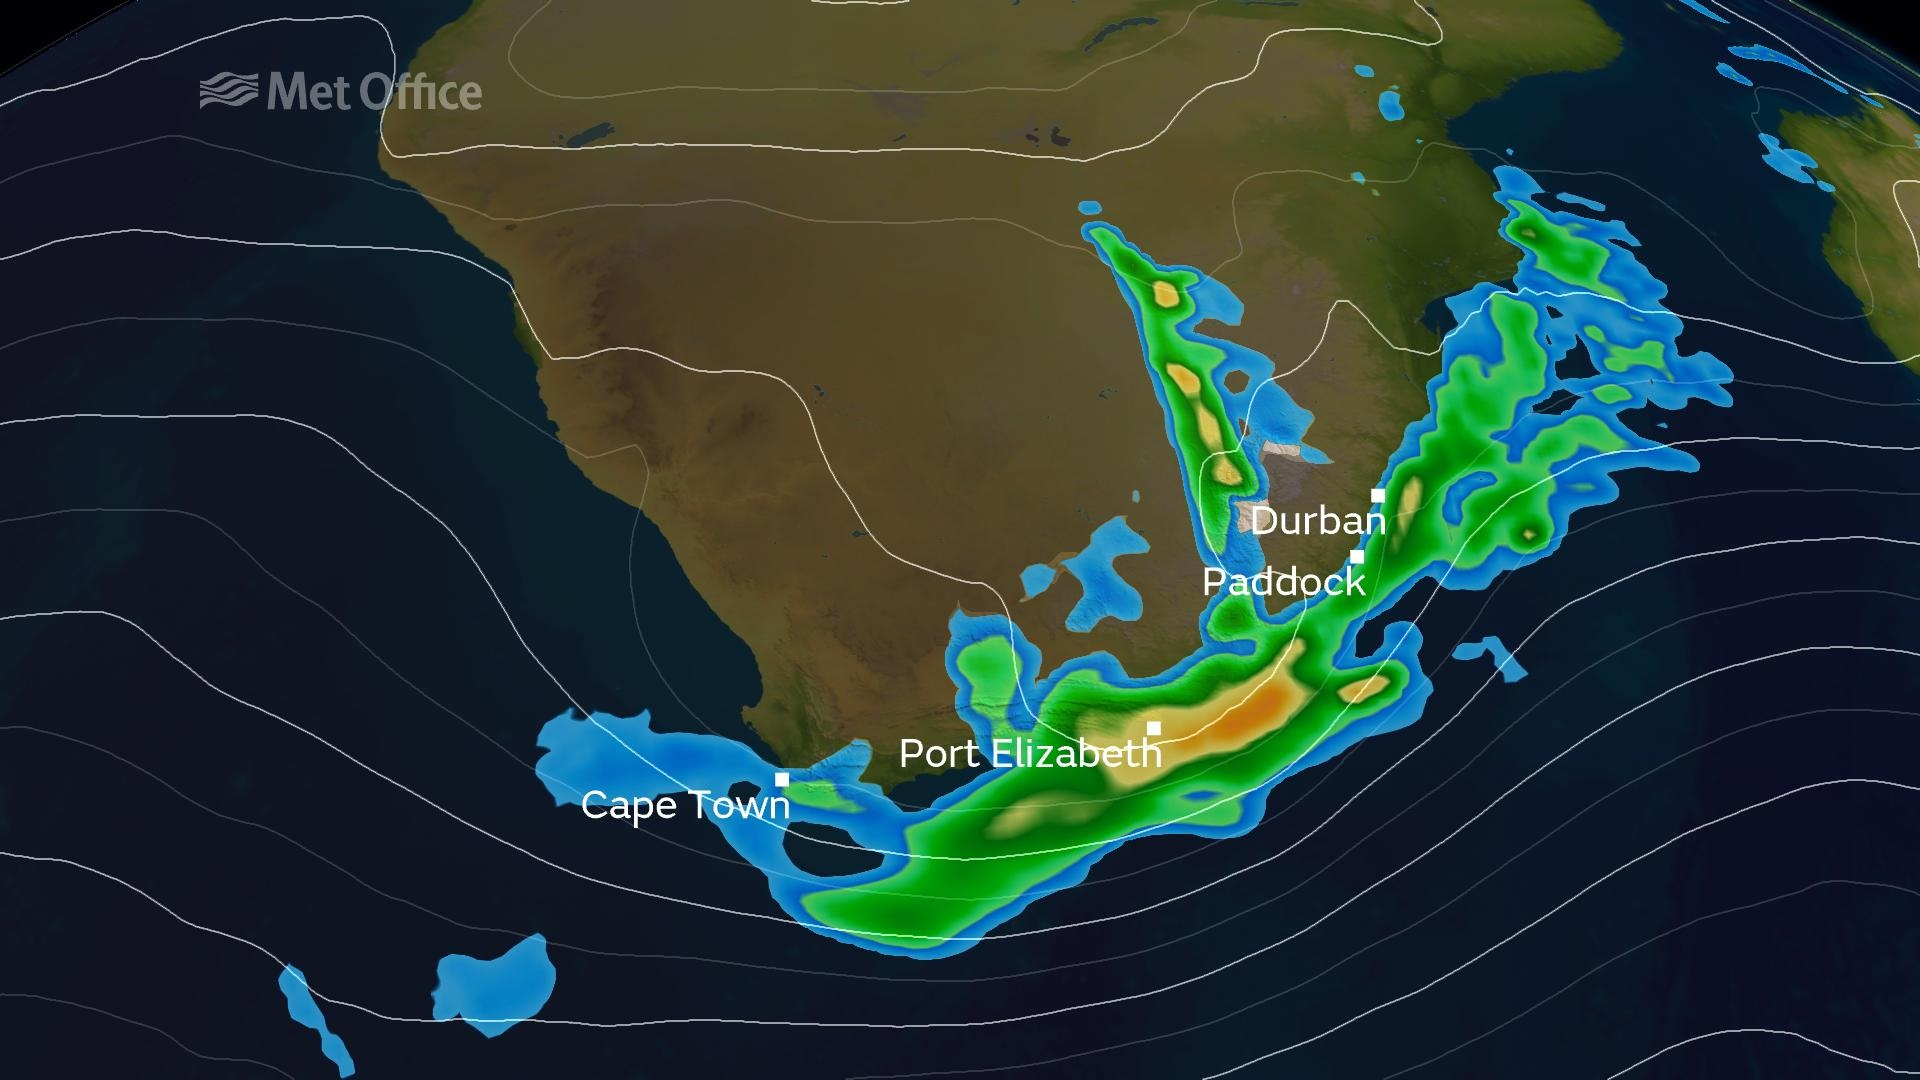 Record breaking rainfall and cold weather grips south africa rainfall affecting coastal areas of south africa gumiabroncs Choice Image